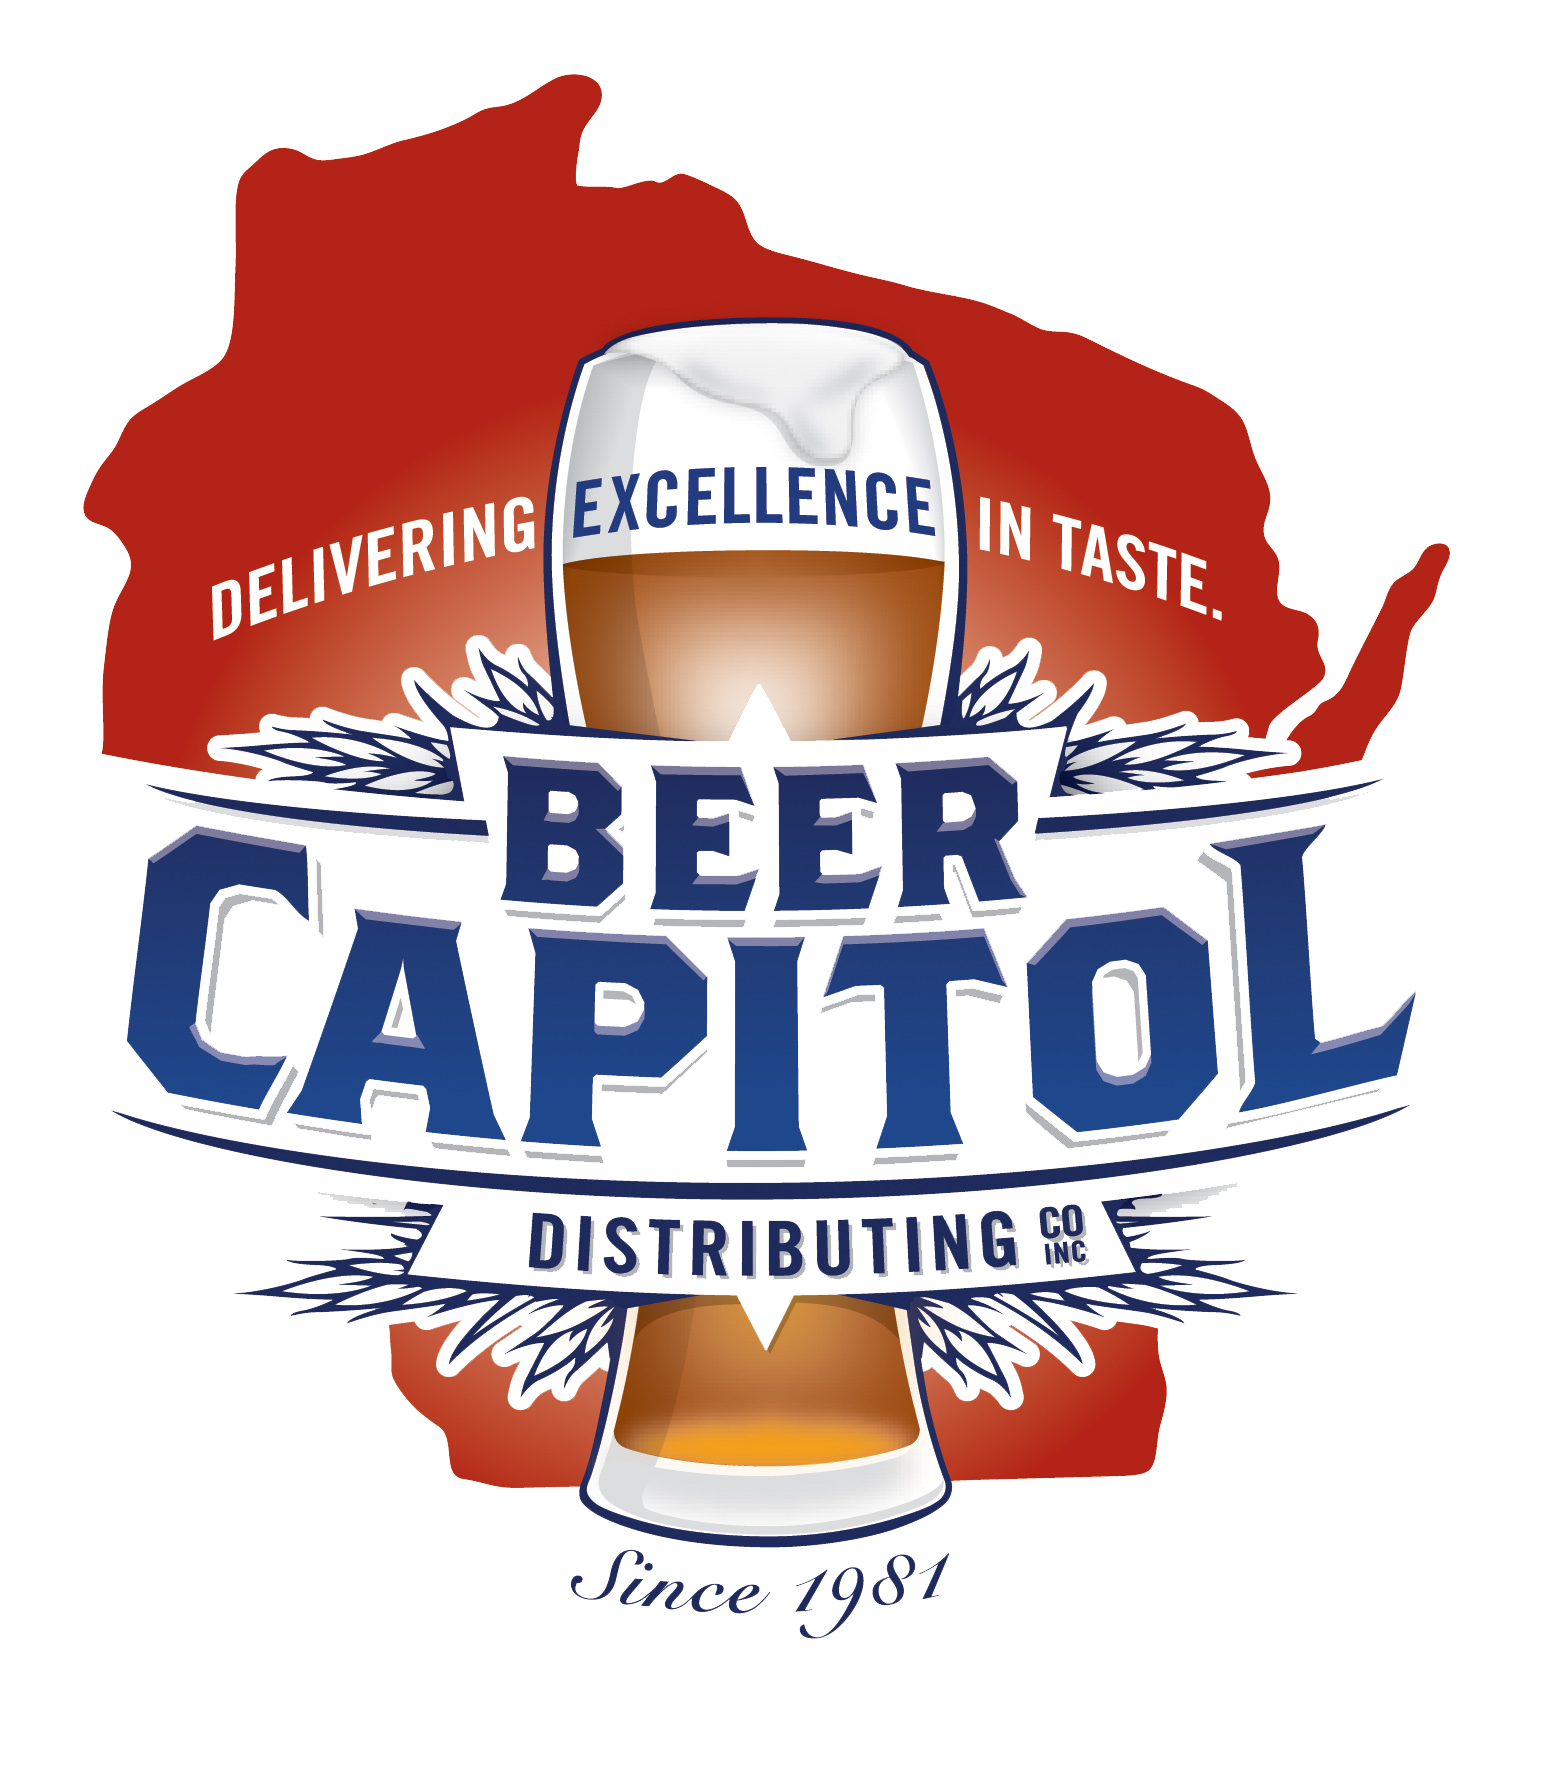 Beer Capitol Distributing LLC